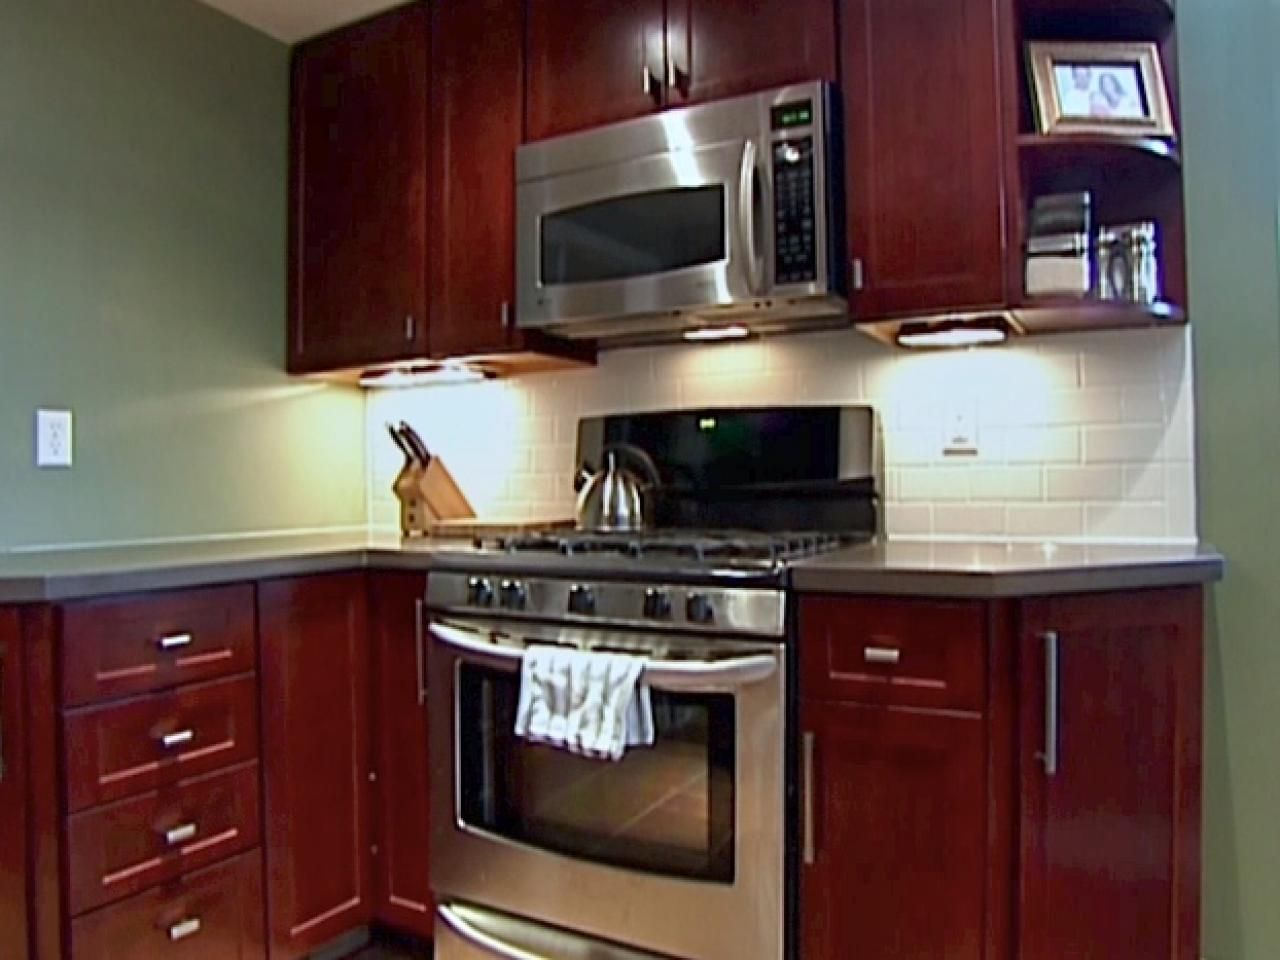 Kitchen catch up how to install cabinets installing kitchen installing kitchen cabinets is a great way to save money on a kitchen renovation learn how to do it yourself at hgtv solutioingenieria Image collections